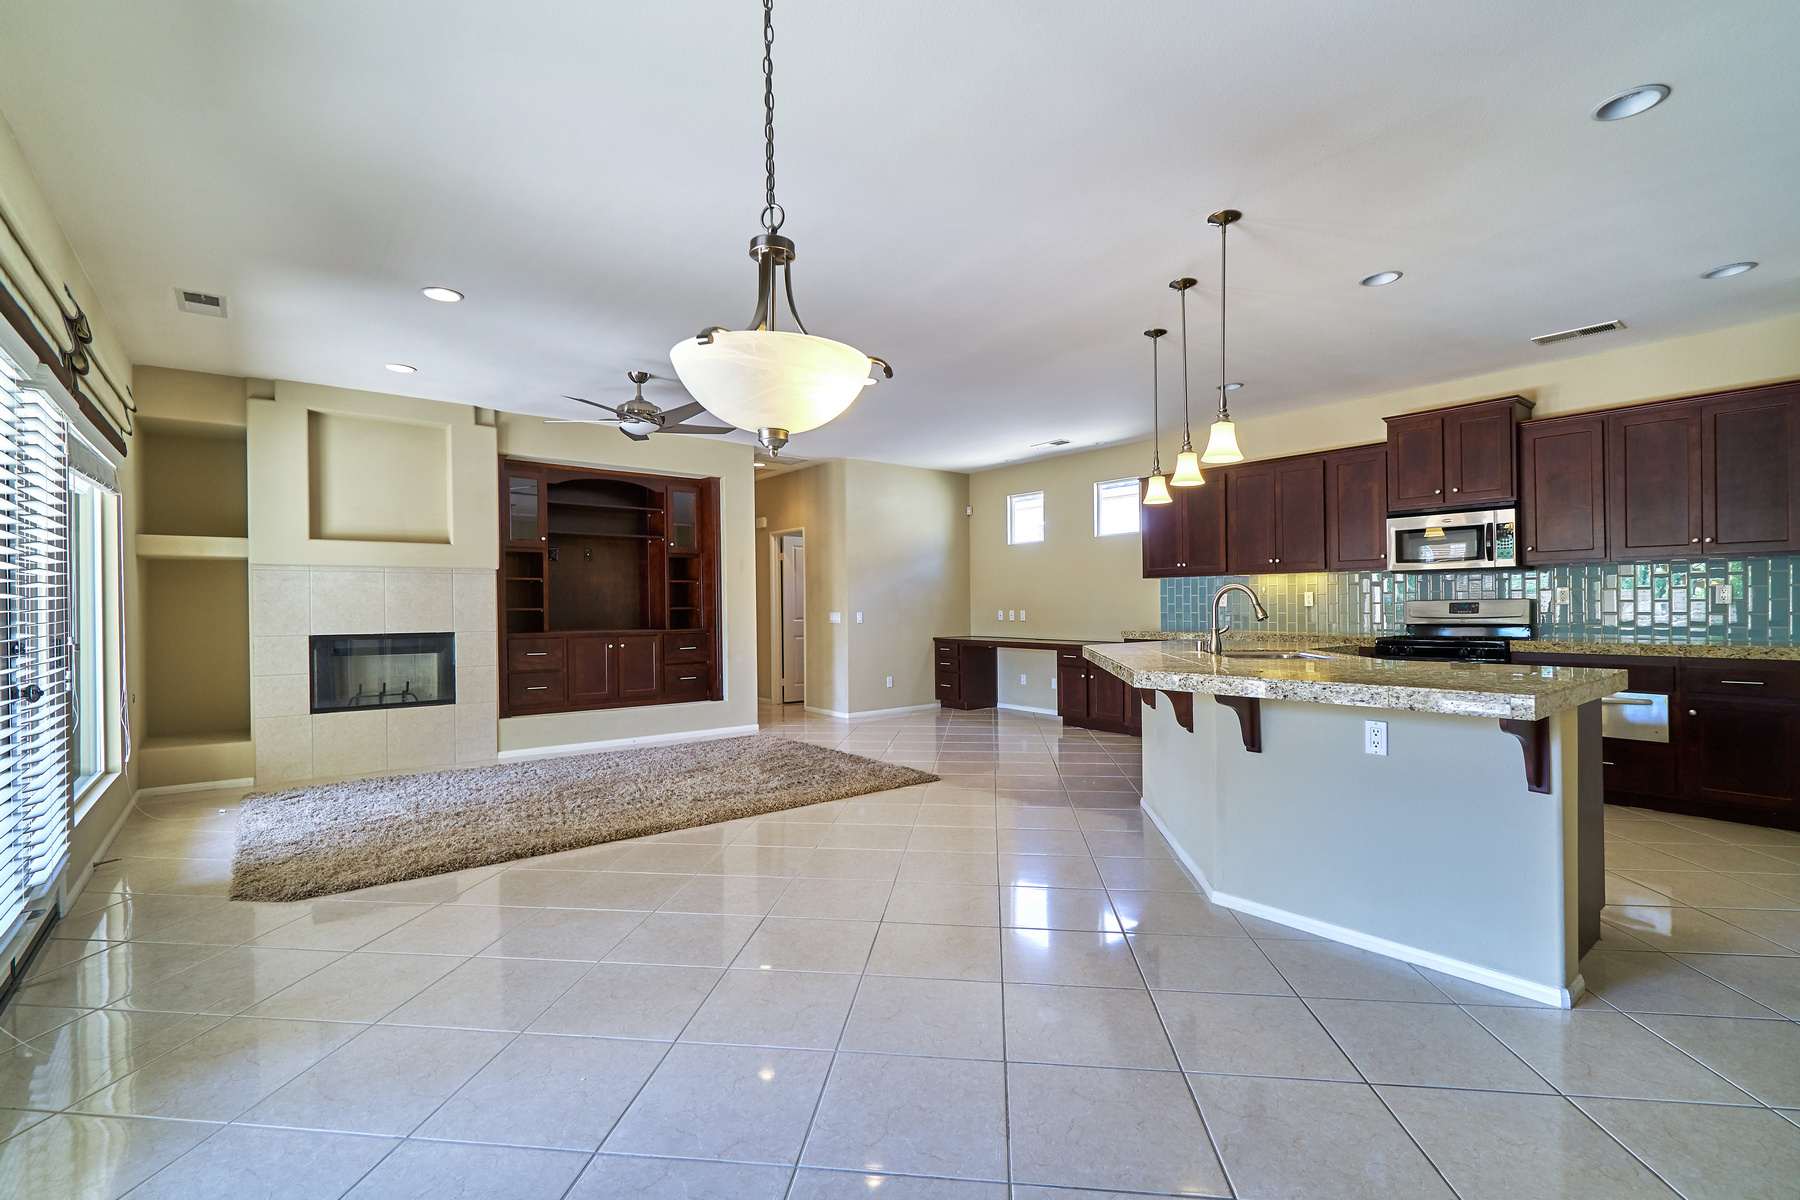 Single Family Homes for Sale at 67901 Rio Vista Dr Cathedral City, California 92234 United States